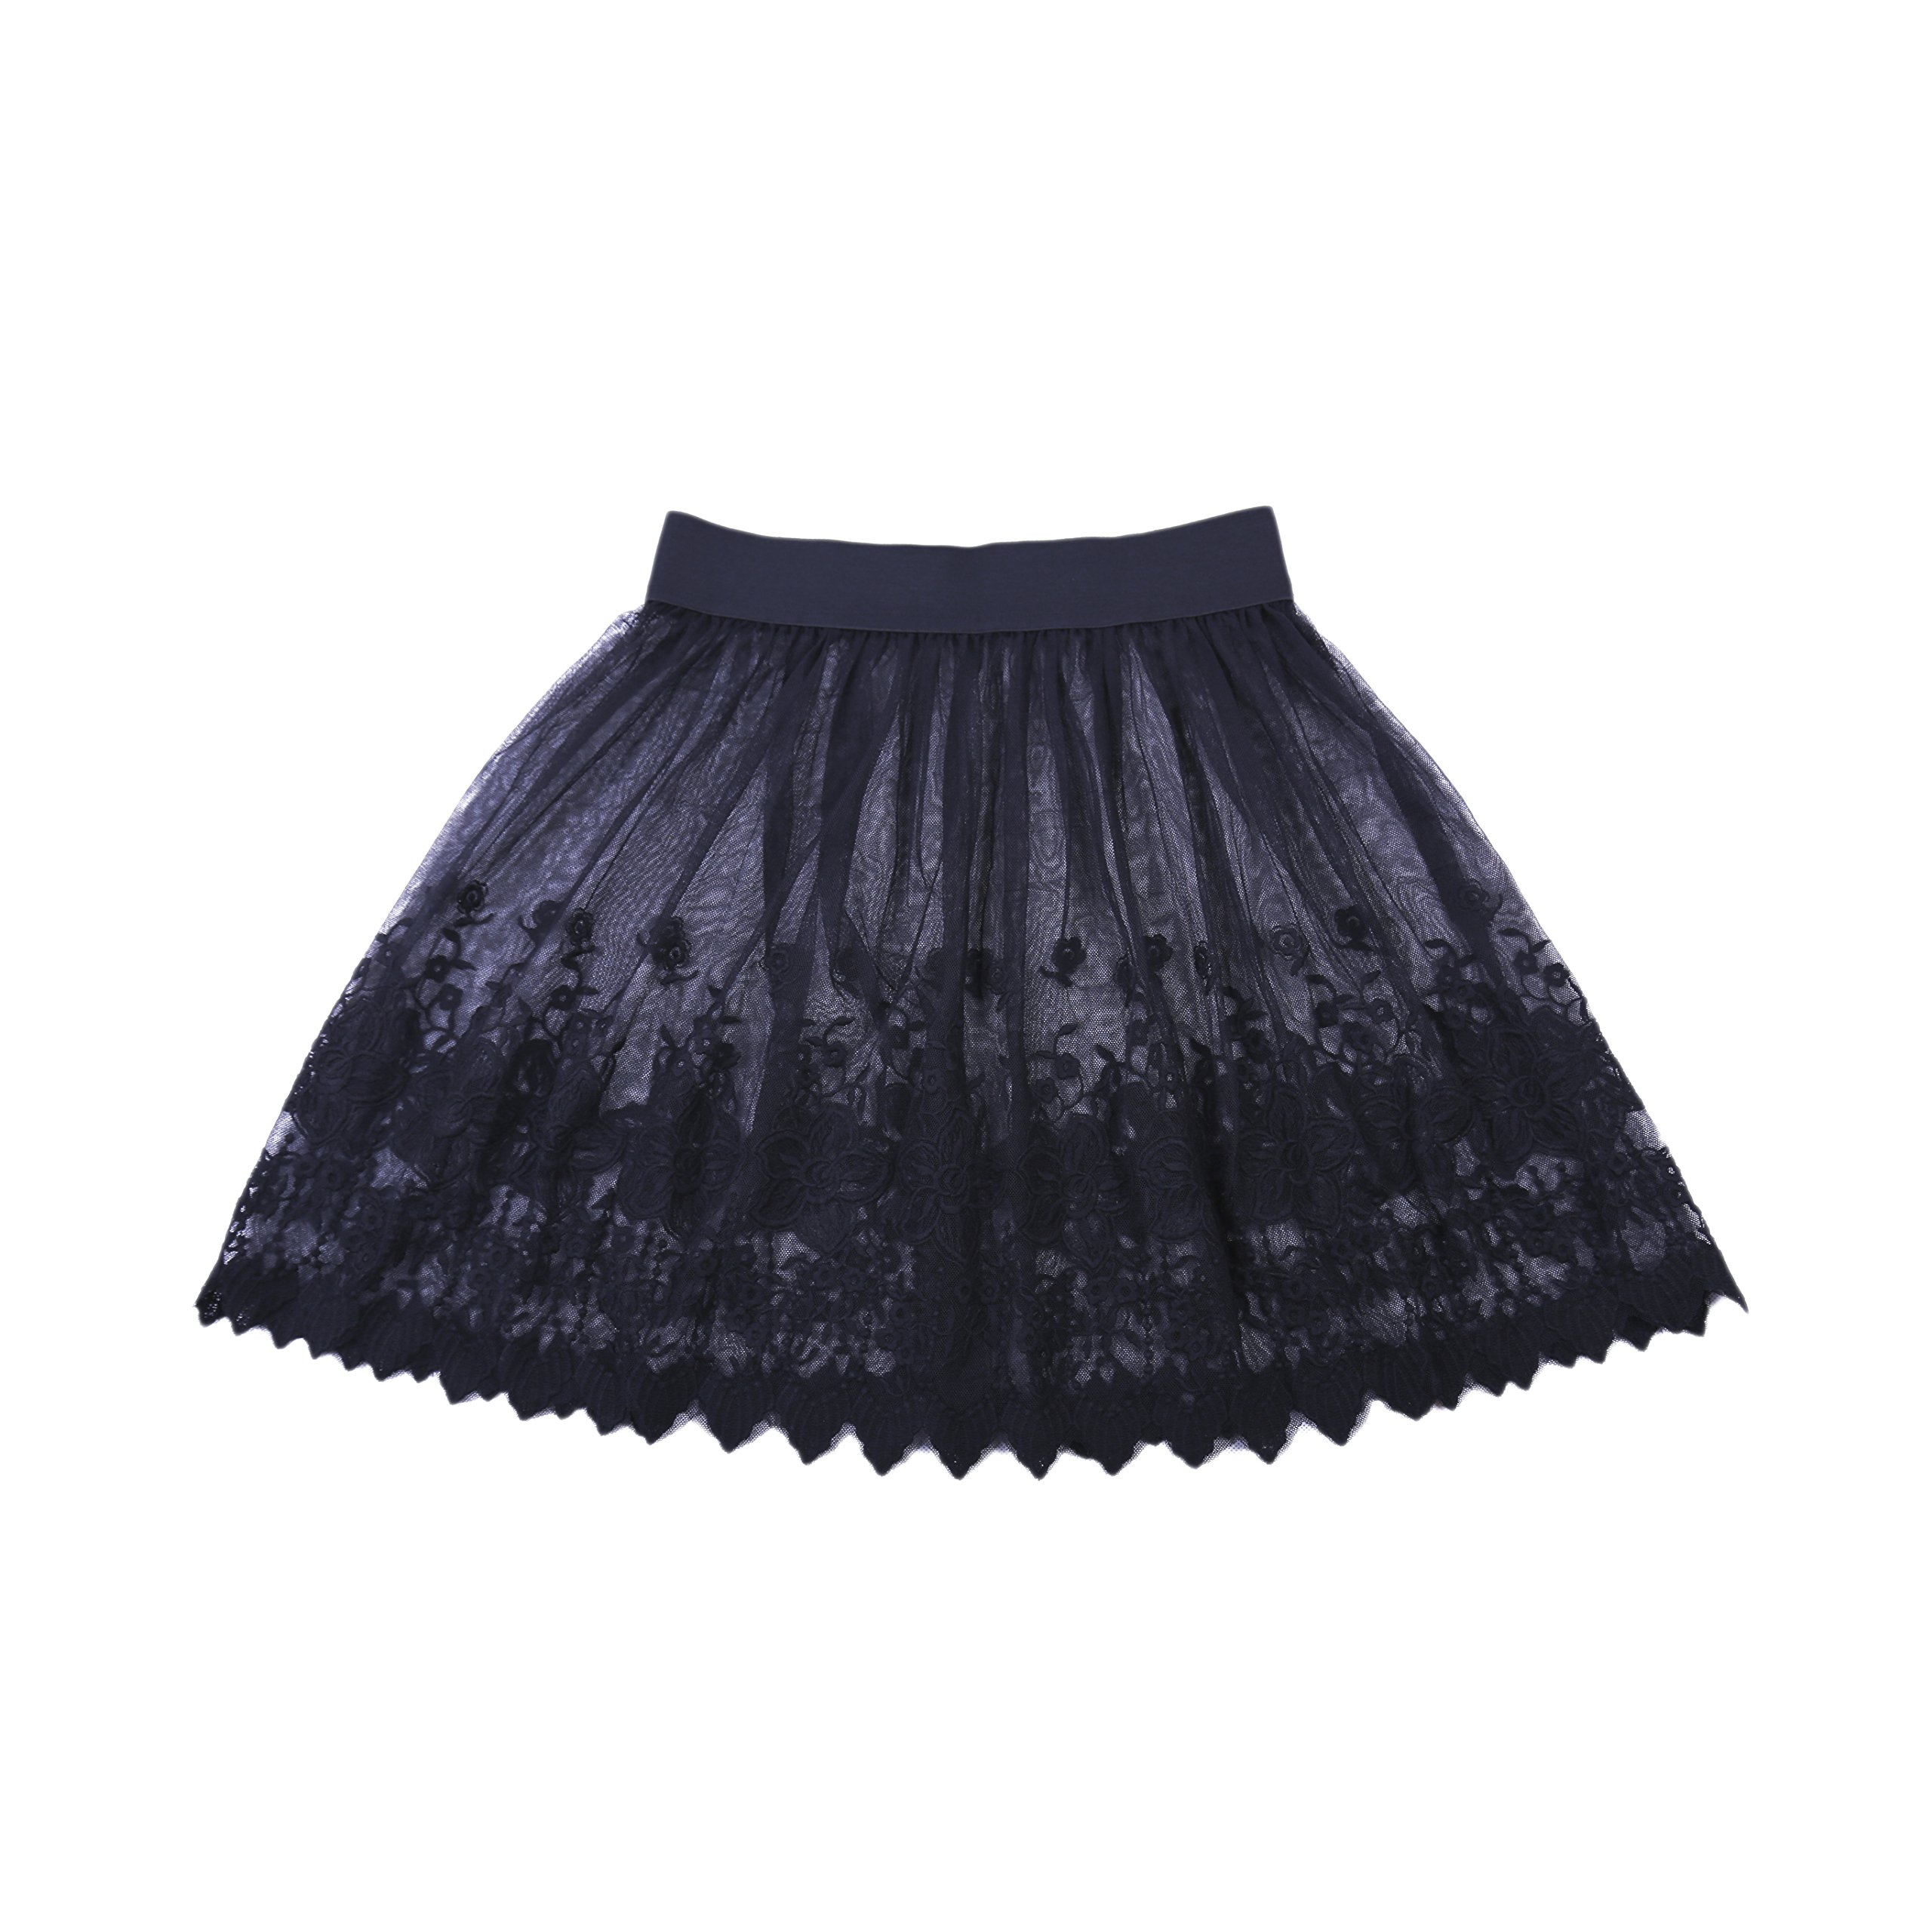 Dorchid Girls' Lace Flower Wedding Half Skirts 3 Layers for Underdress Black